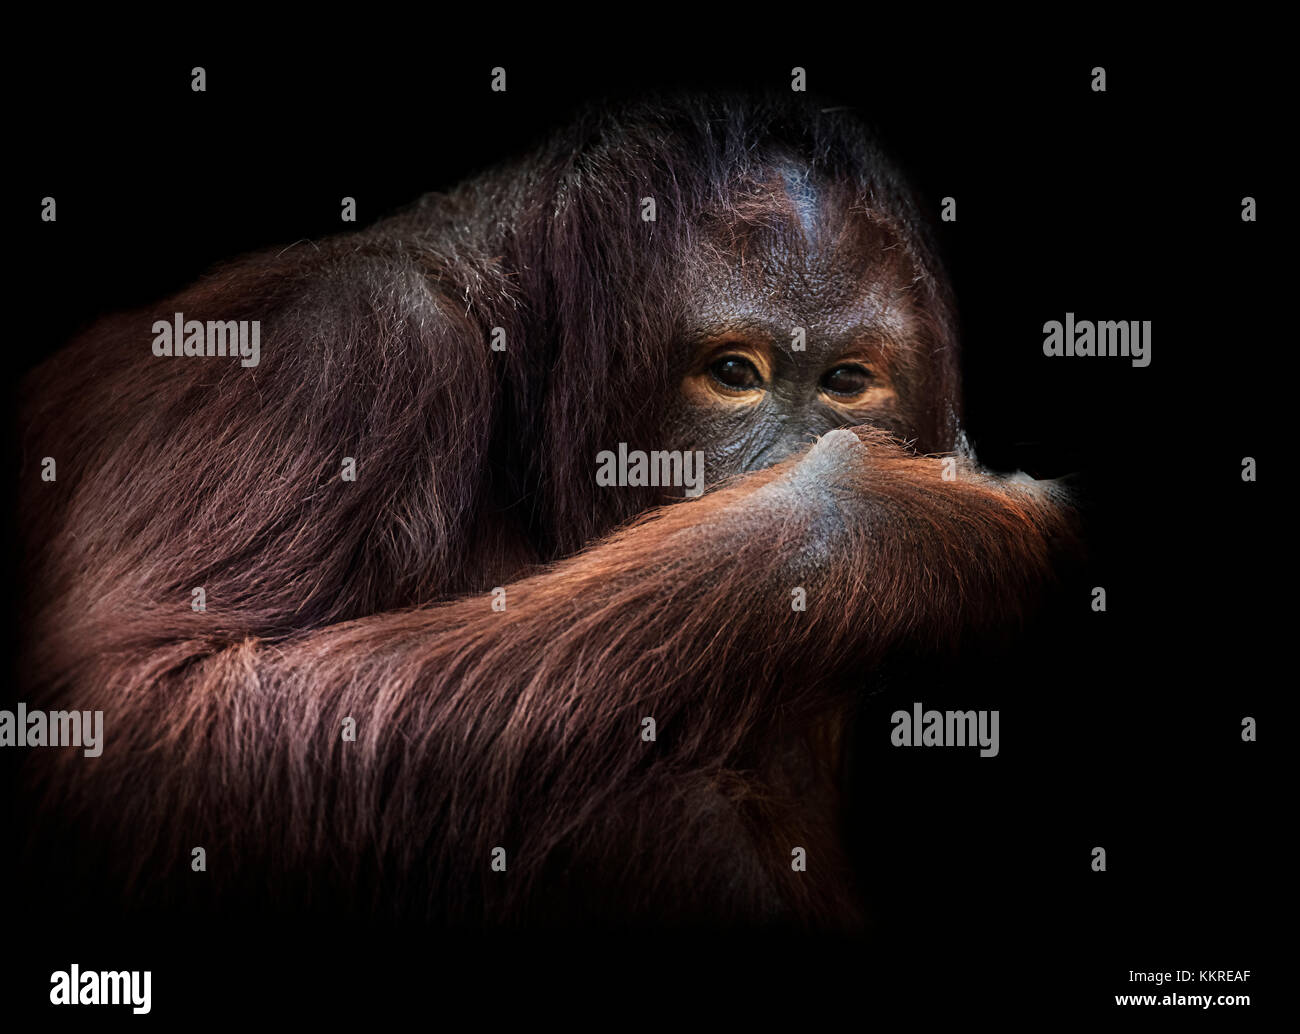 Orangutan on black, portrait - Stock Image